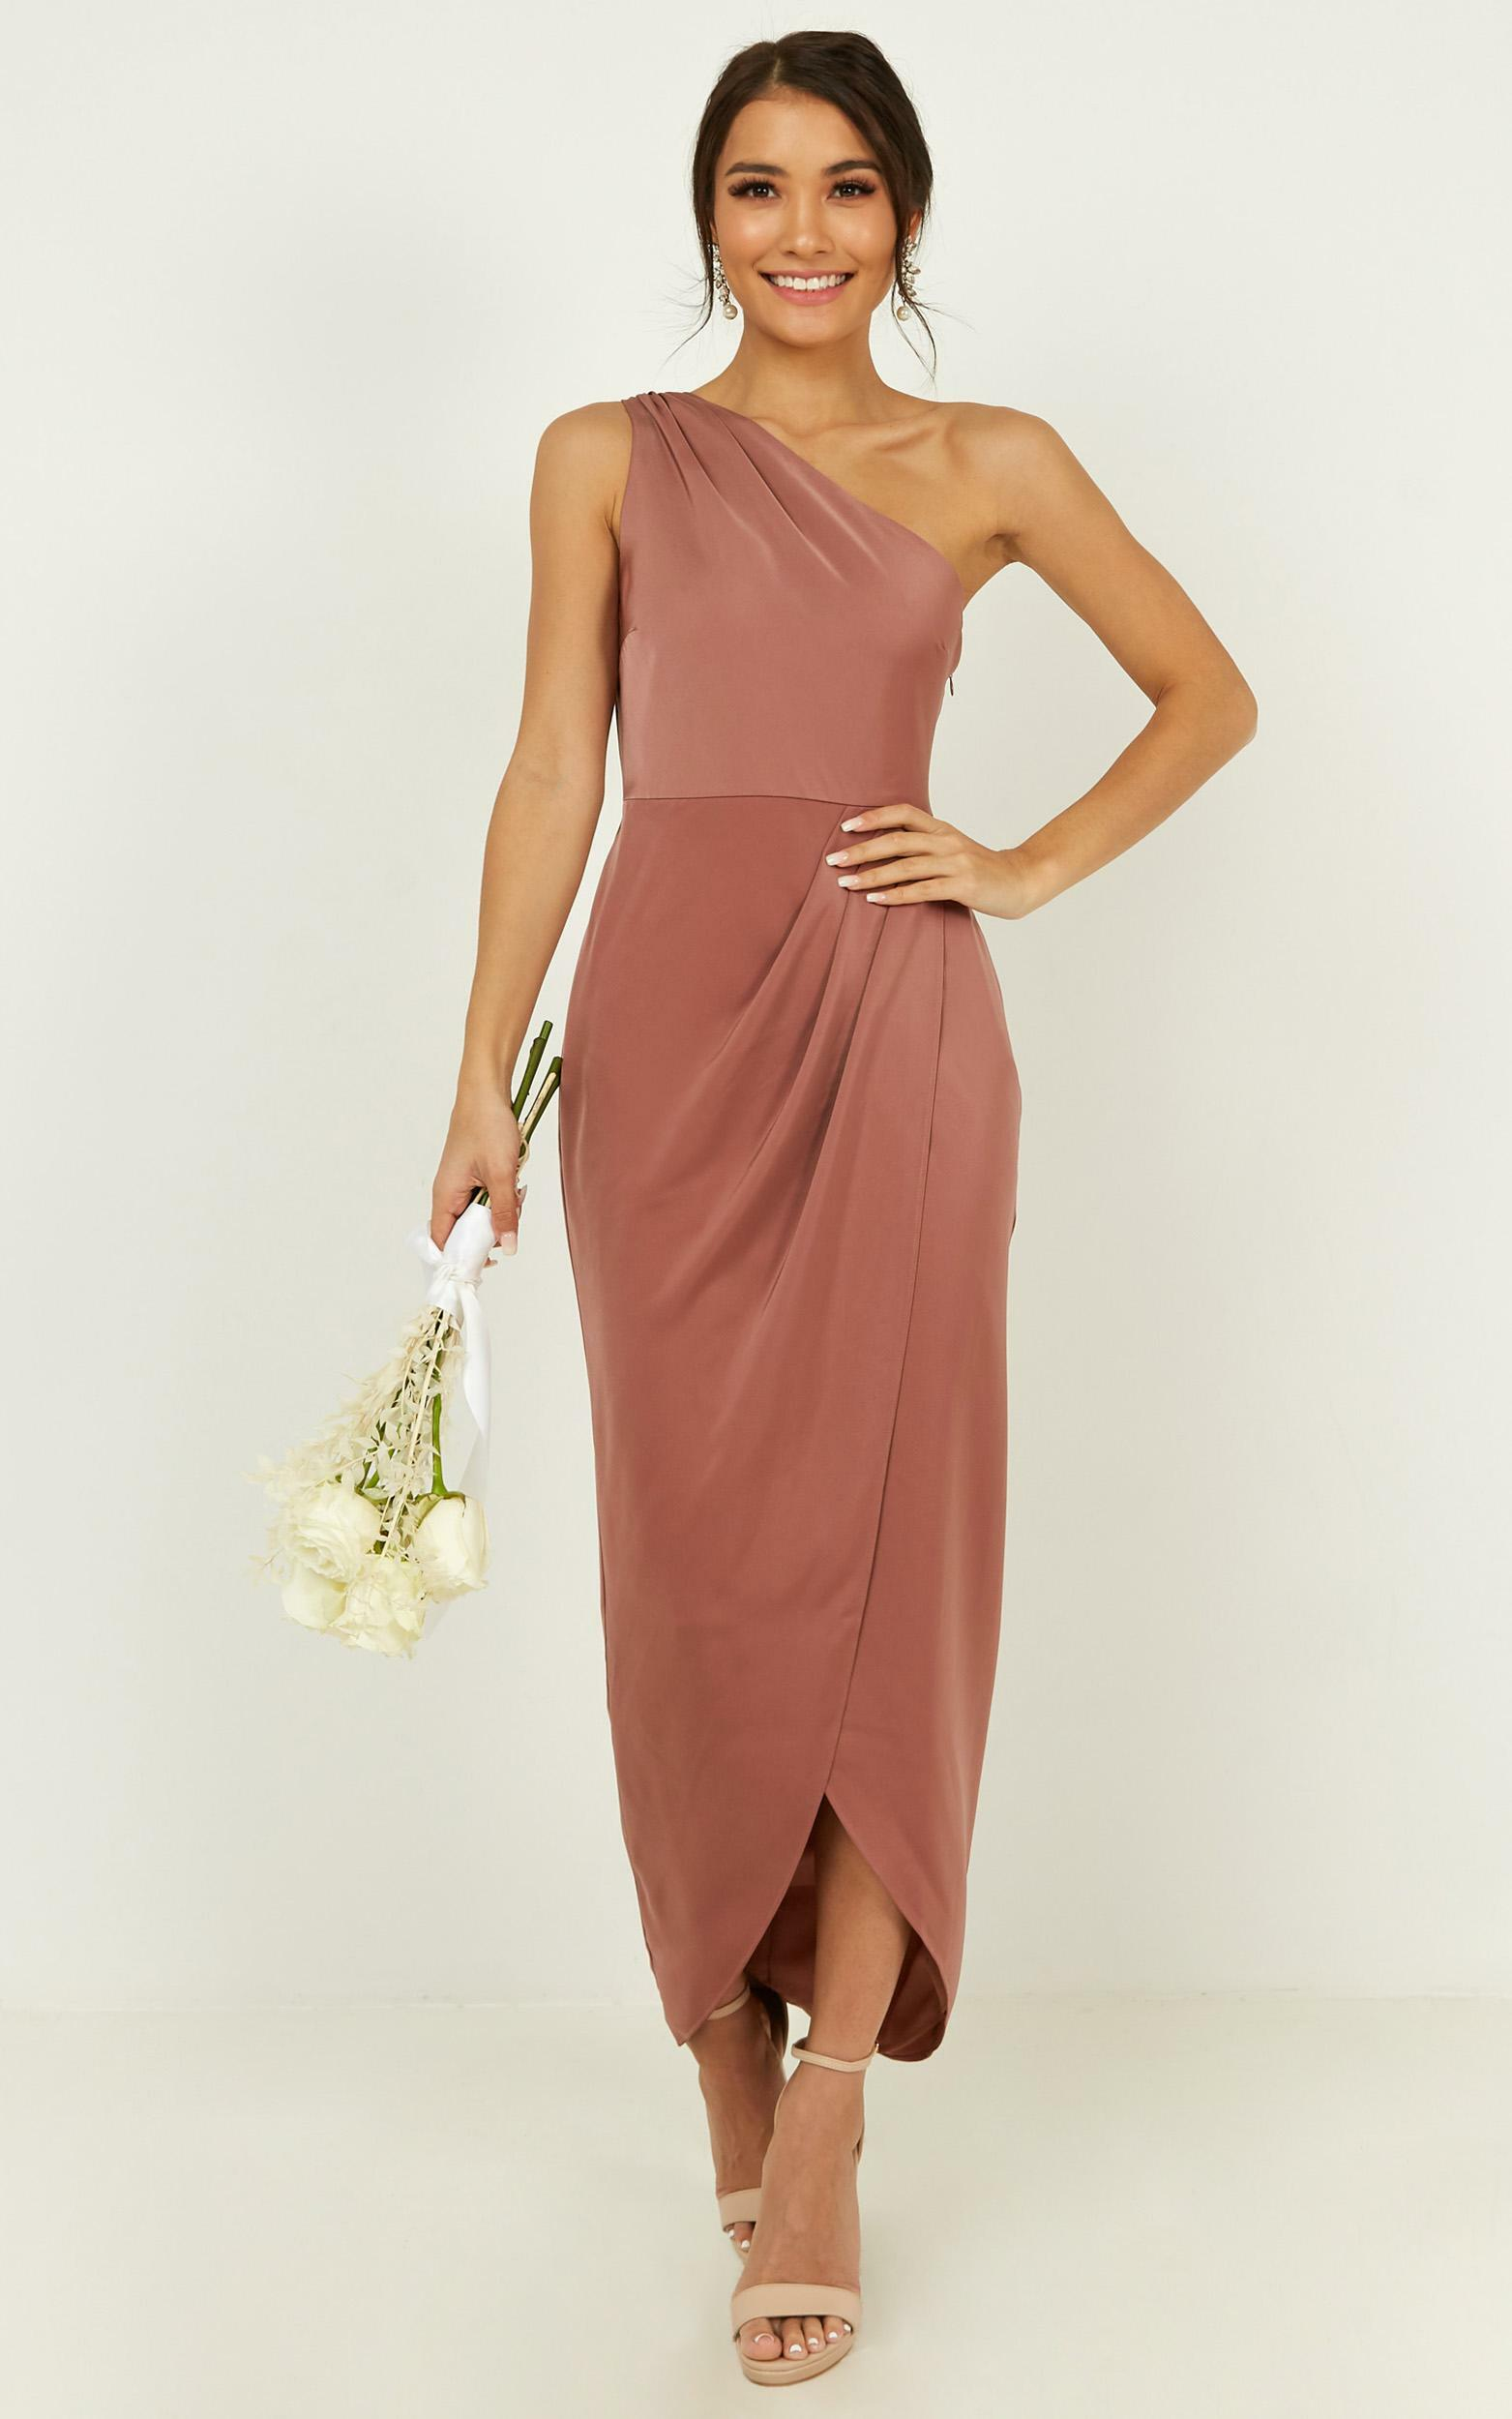 Felt So Happy Dress in dusty rose - 14 (XL), Pink, hi-res image number null